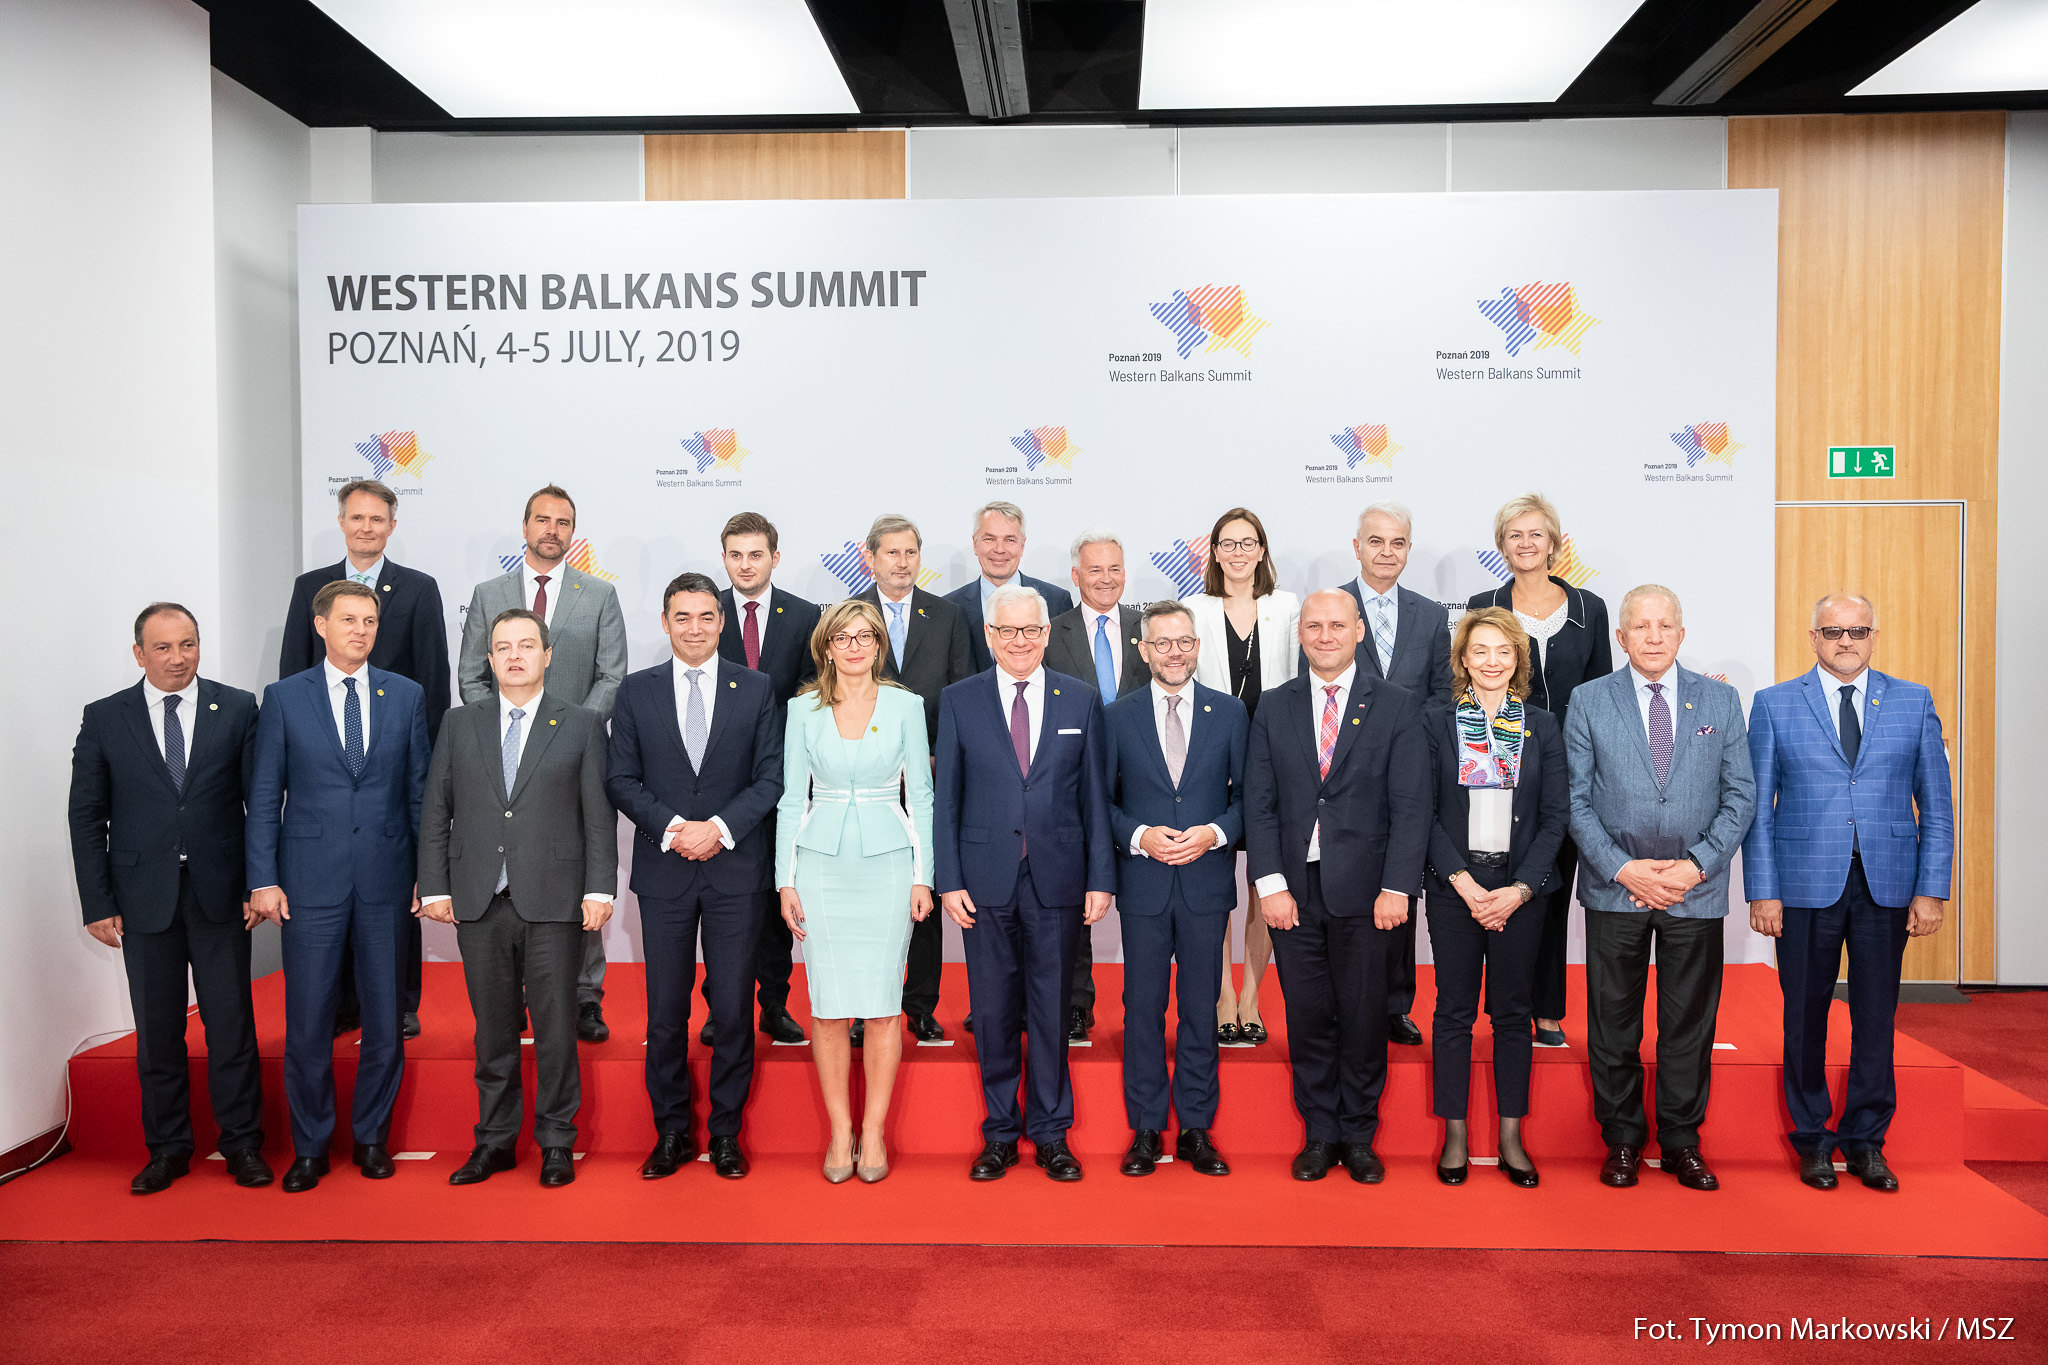 European Western Balkans - The most influential portal on